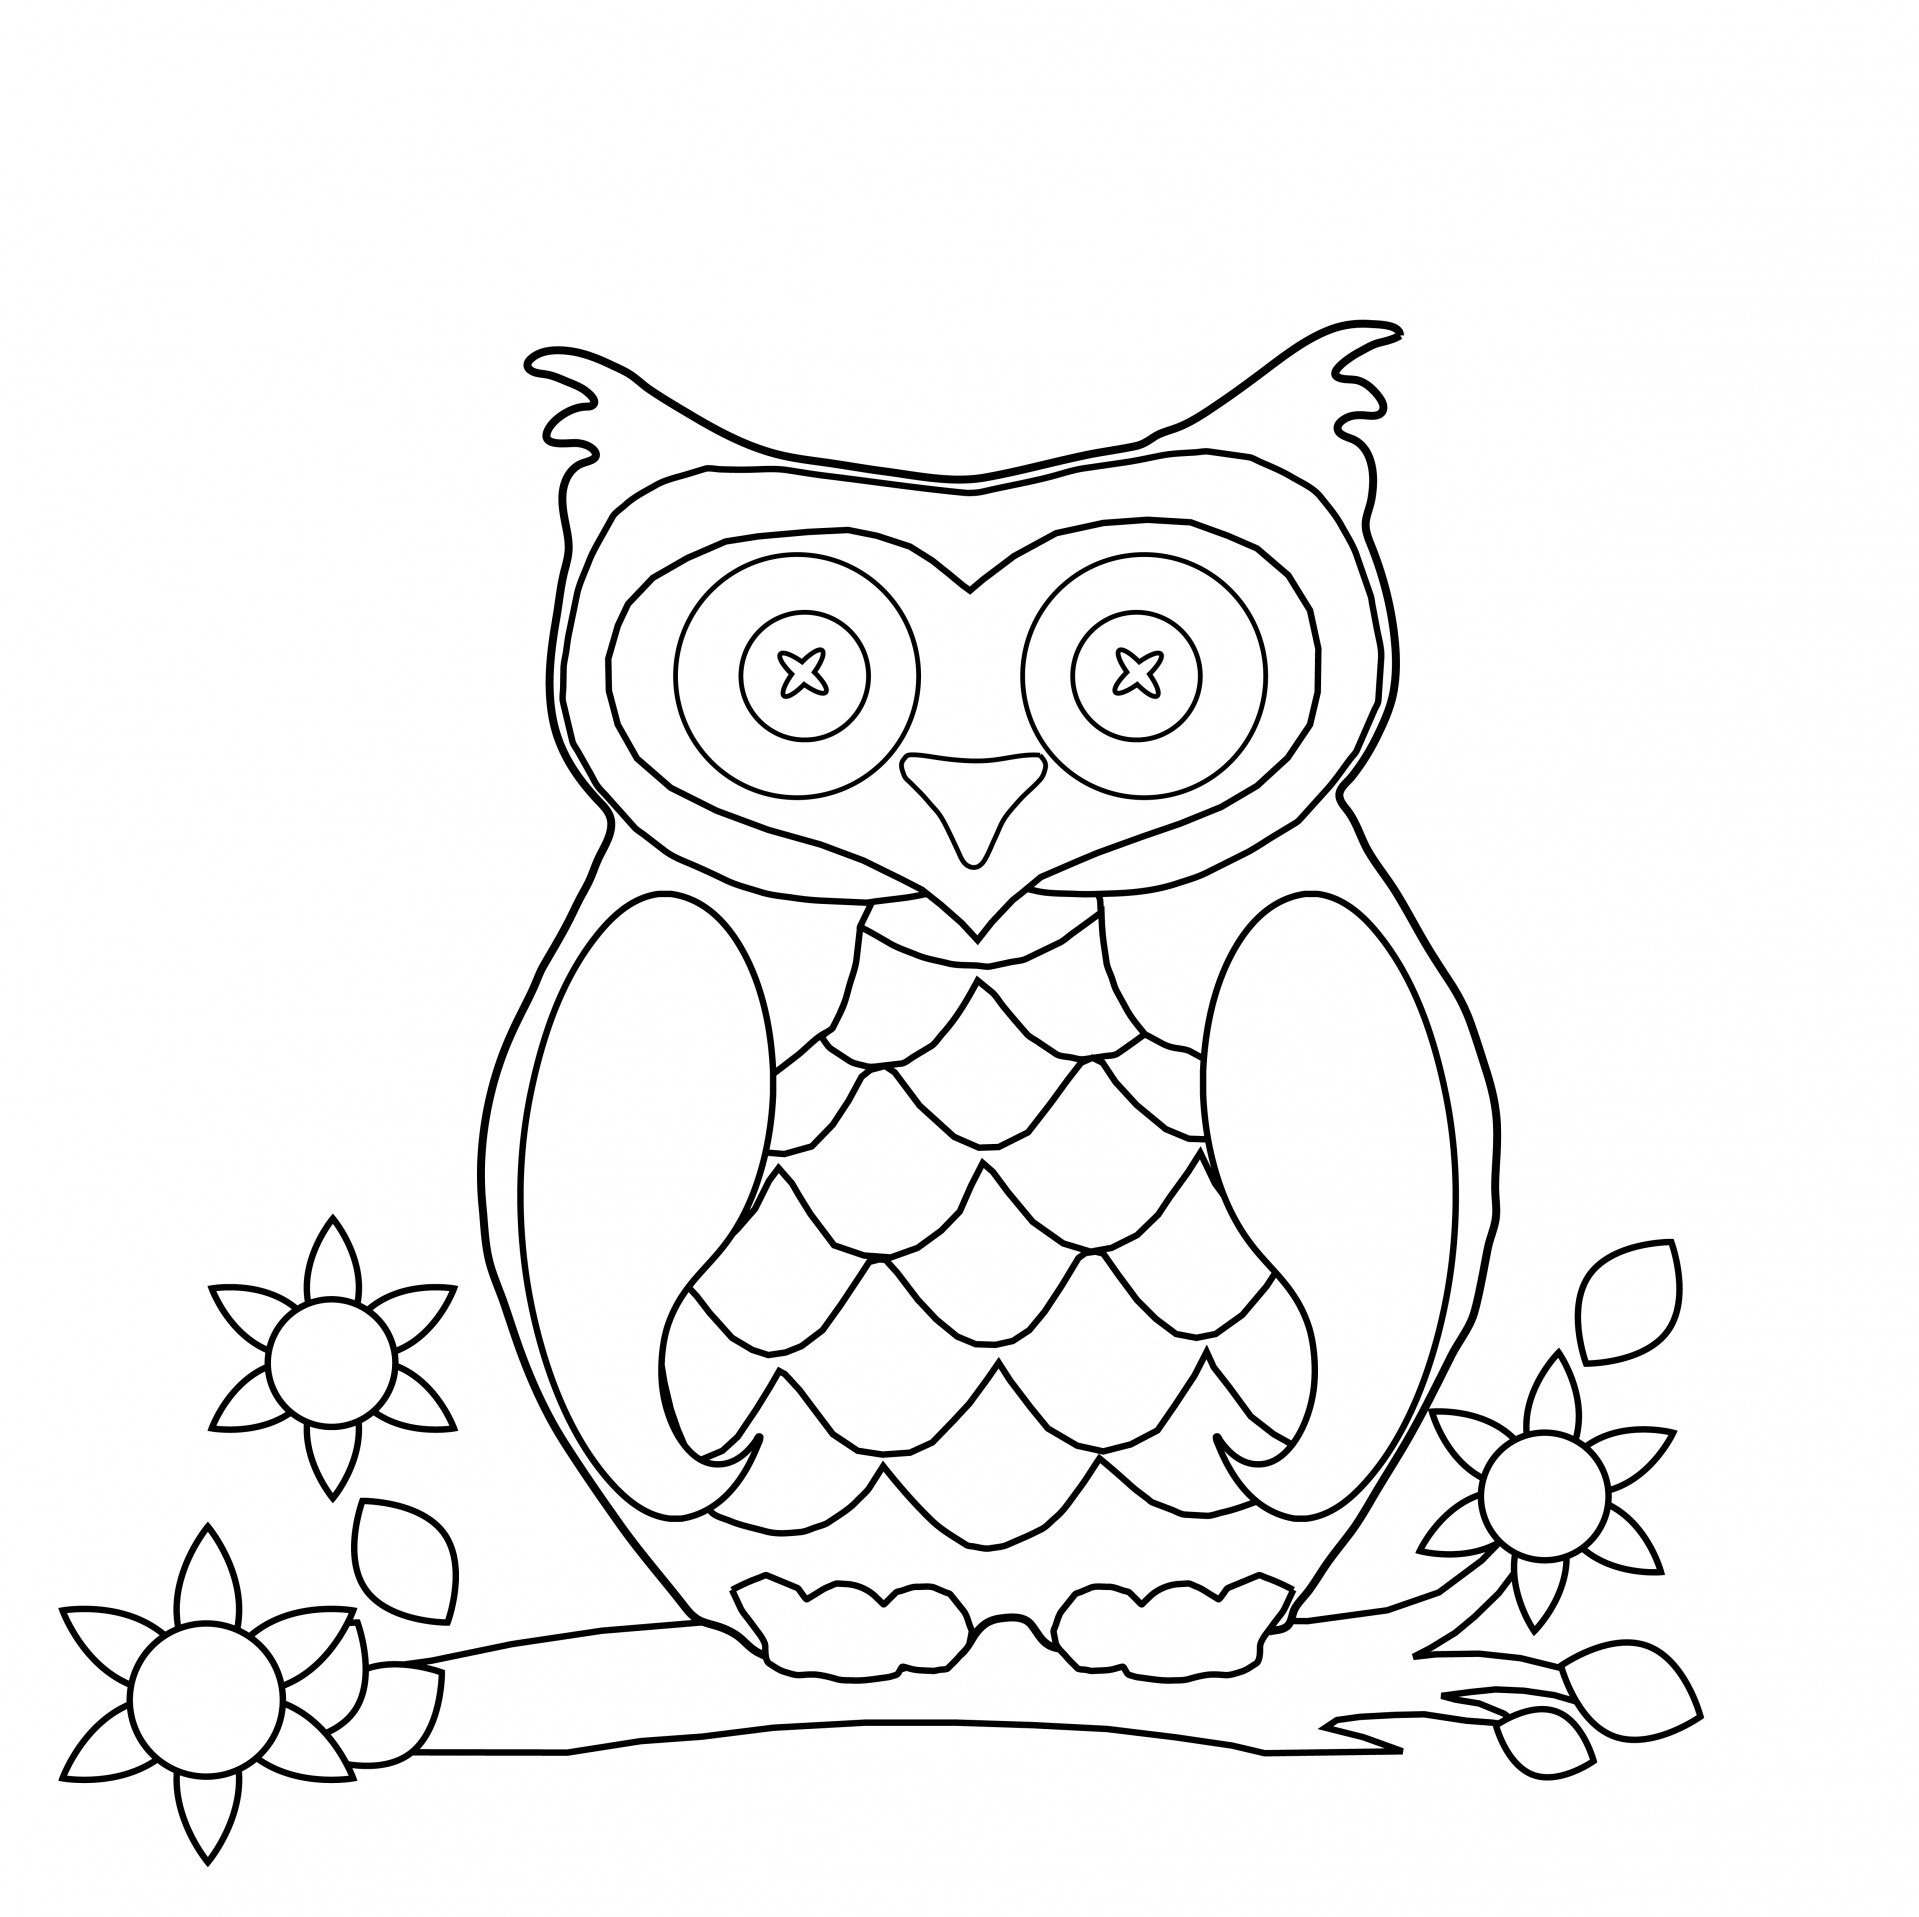 colering pages free printable abstract coloring pages for adults pages colering